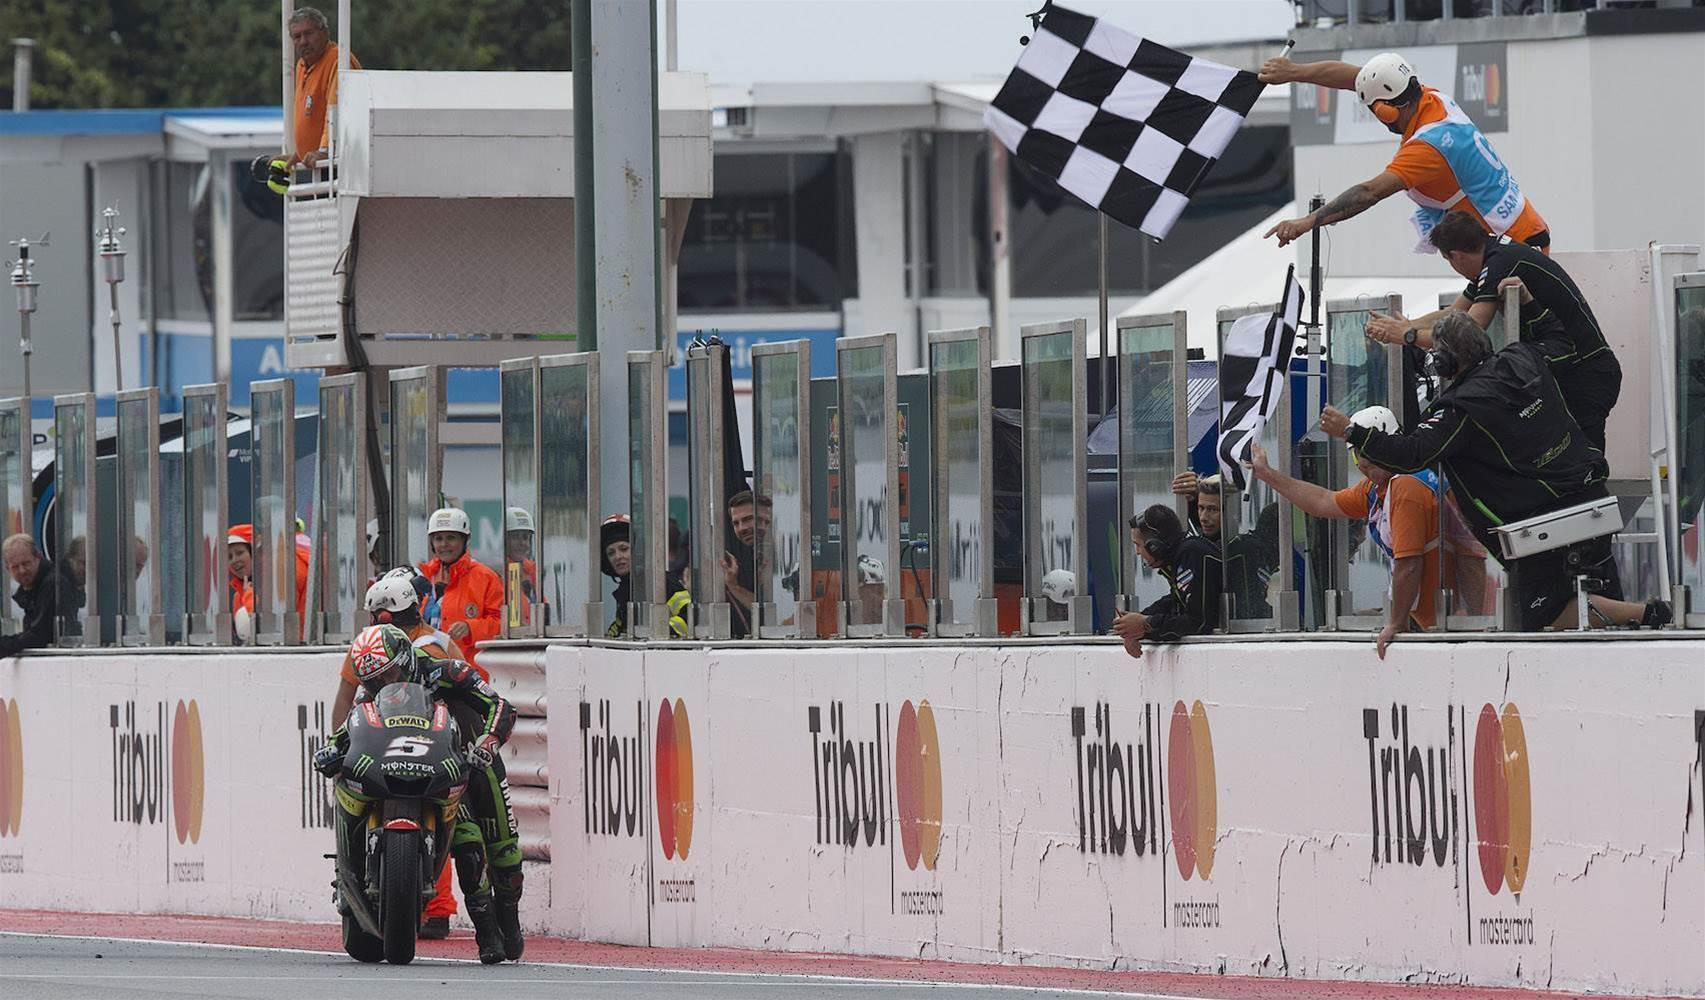 VIDEO: MotoGP rider pushes bike across finish line